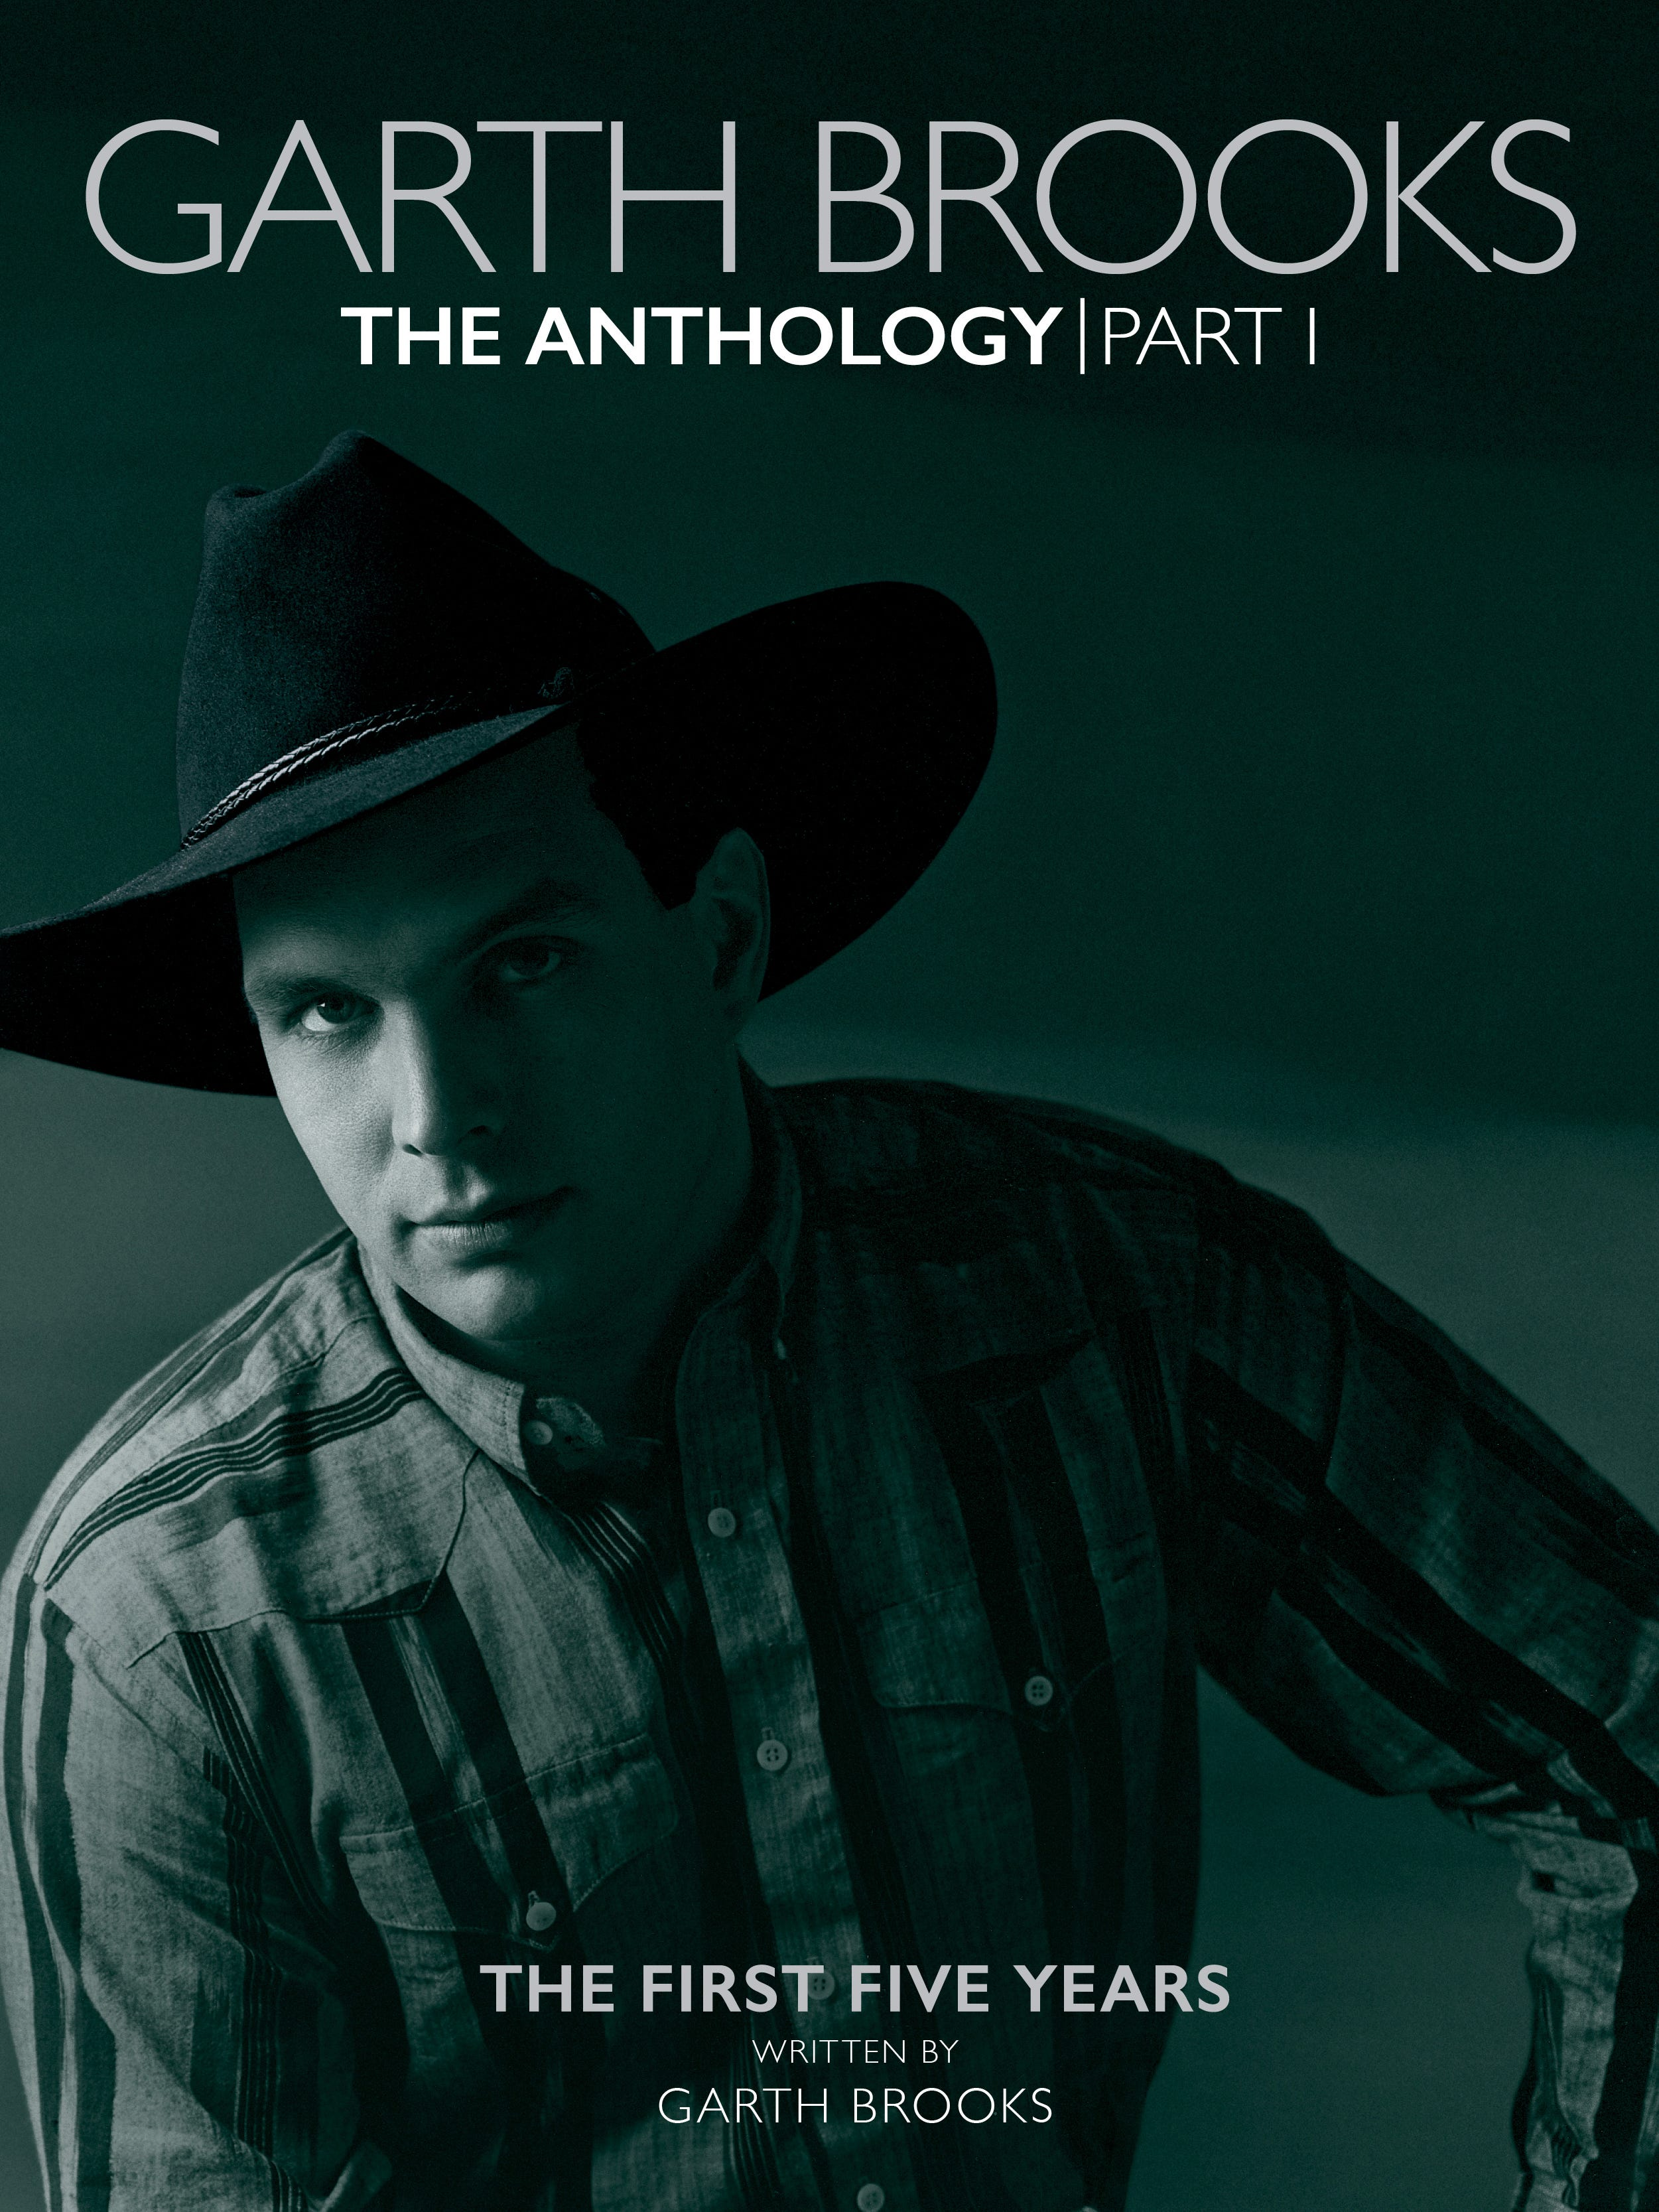 Garth Brooks The Anthology The First Five Years